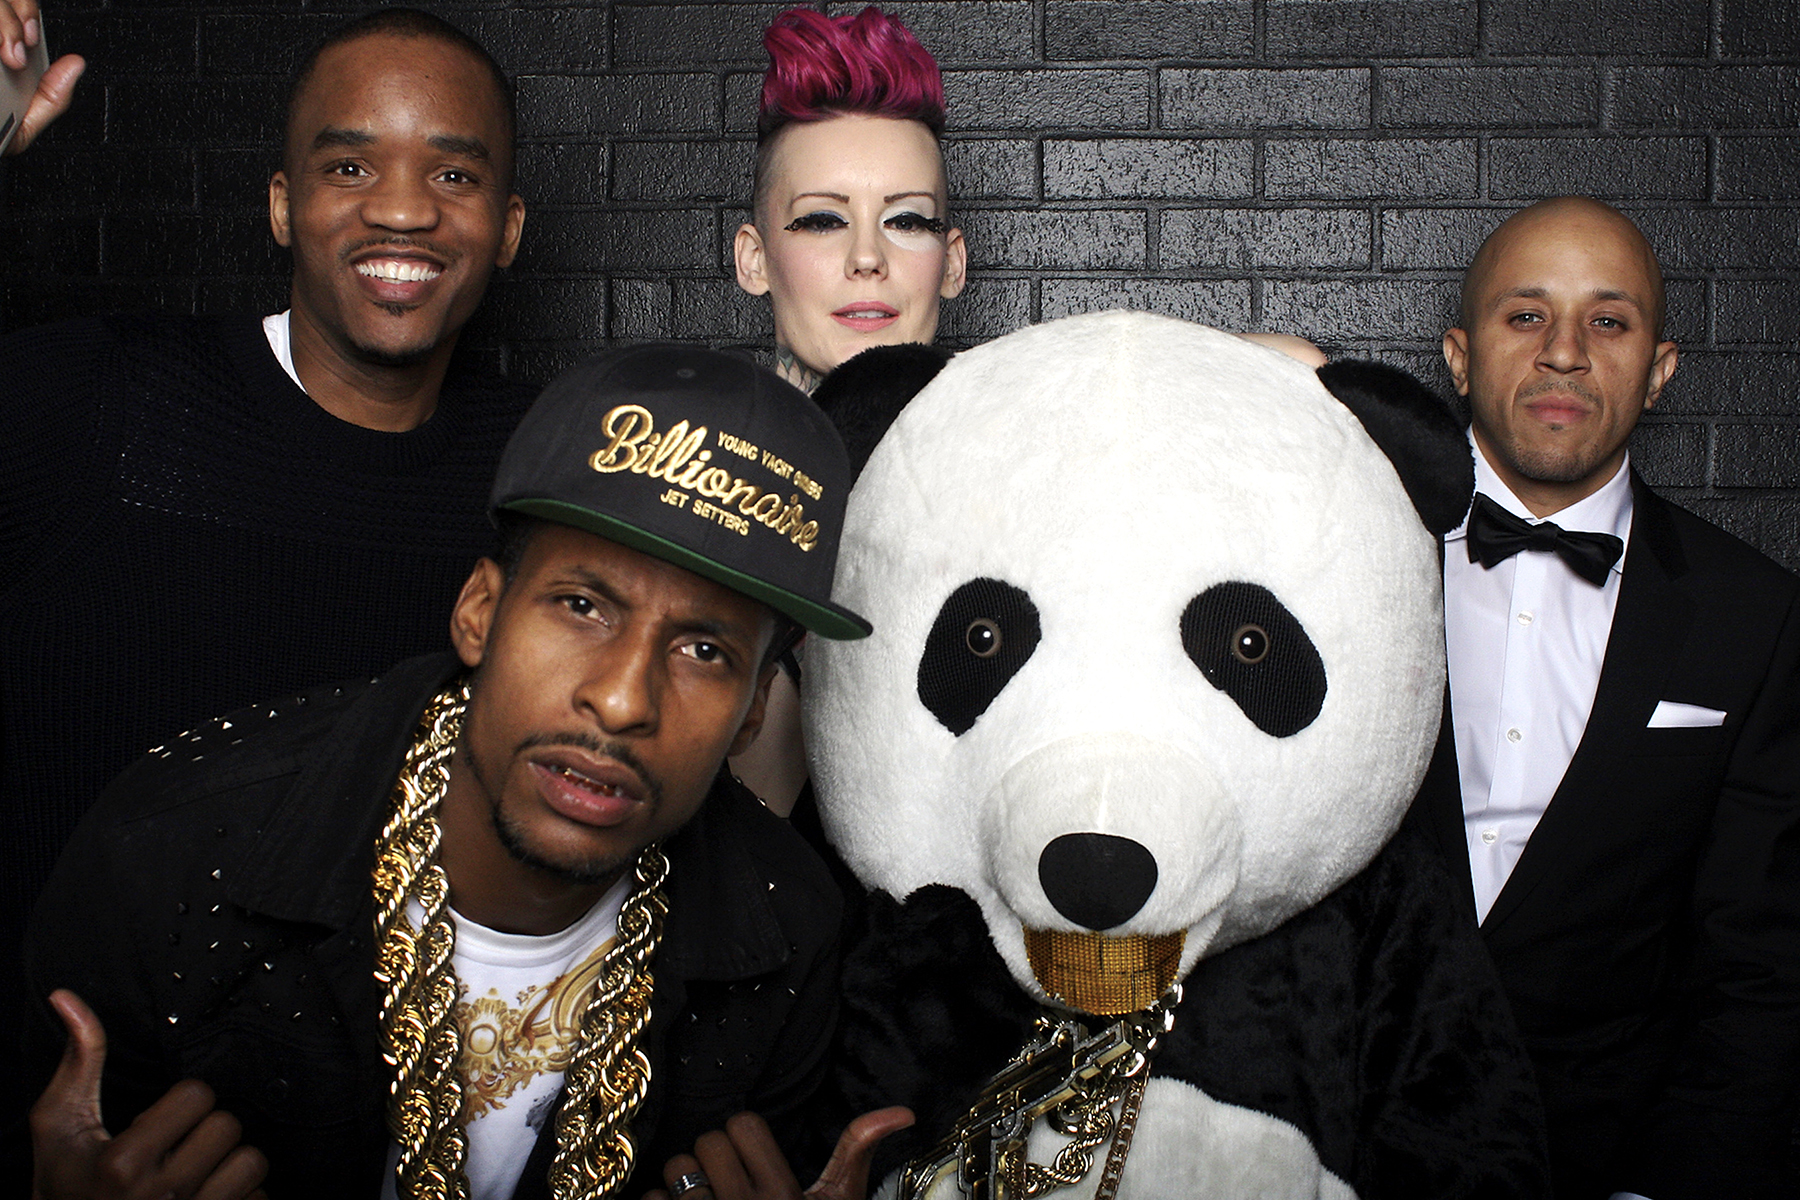 Grammy Awards After Party Panda Republic Records